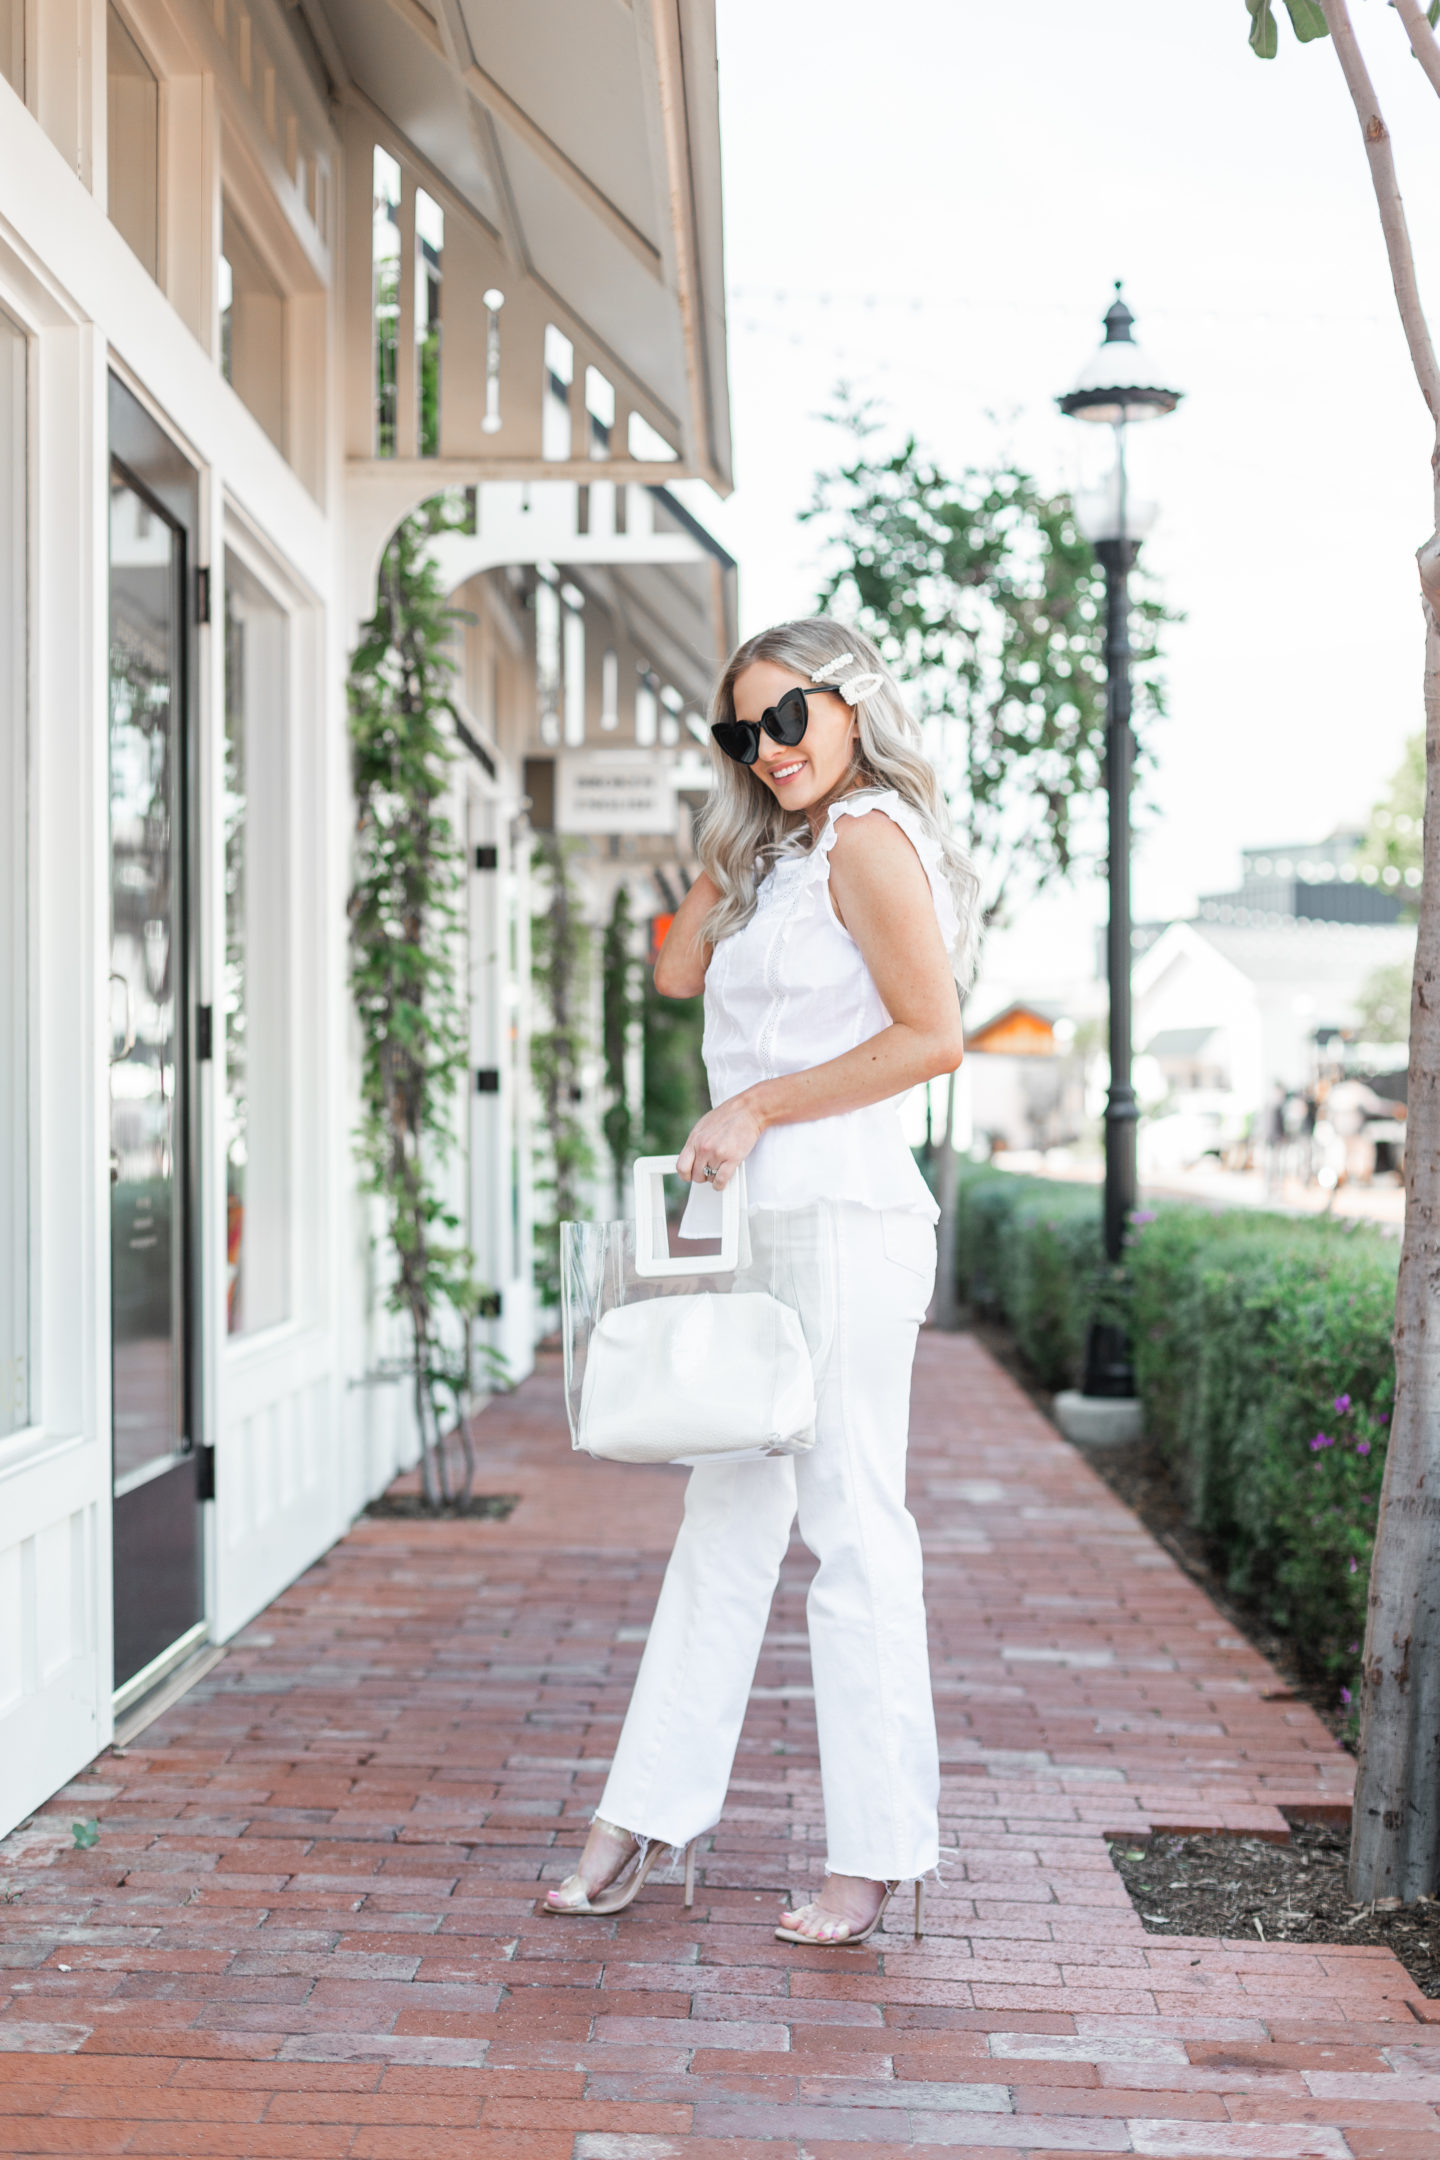 How to Wear High Waisted White Jeans in Spring featured by top US fashion blog, Dress Me Blonde: image of a woman wearing Good American high waisted white jeans, Hunge lace peplum top, Tony Bianco sandals, Oweisong clear tote, pearl hair clips and Saint Laurent heart sunglasses